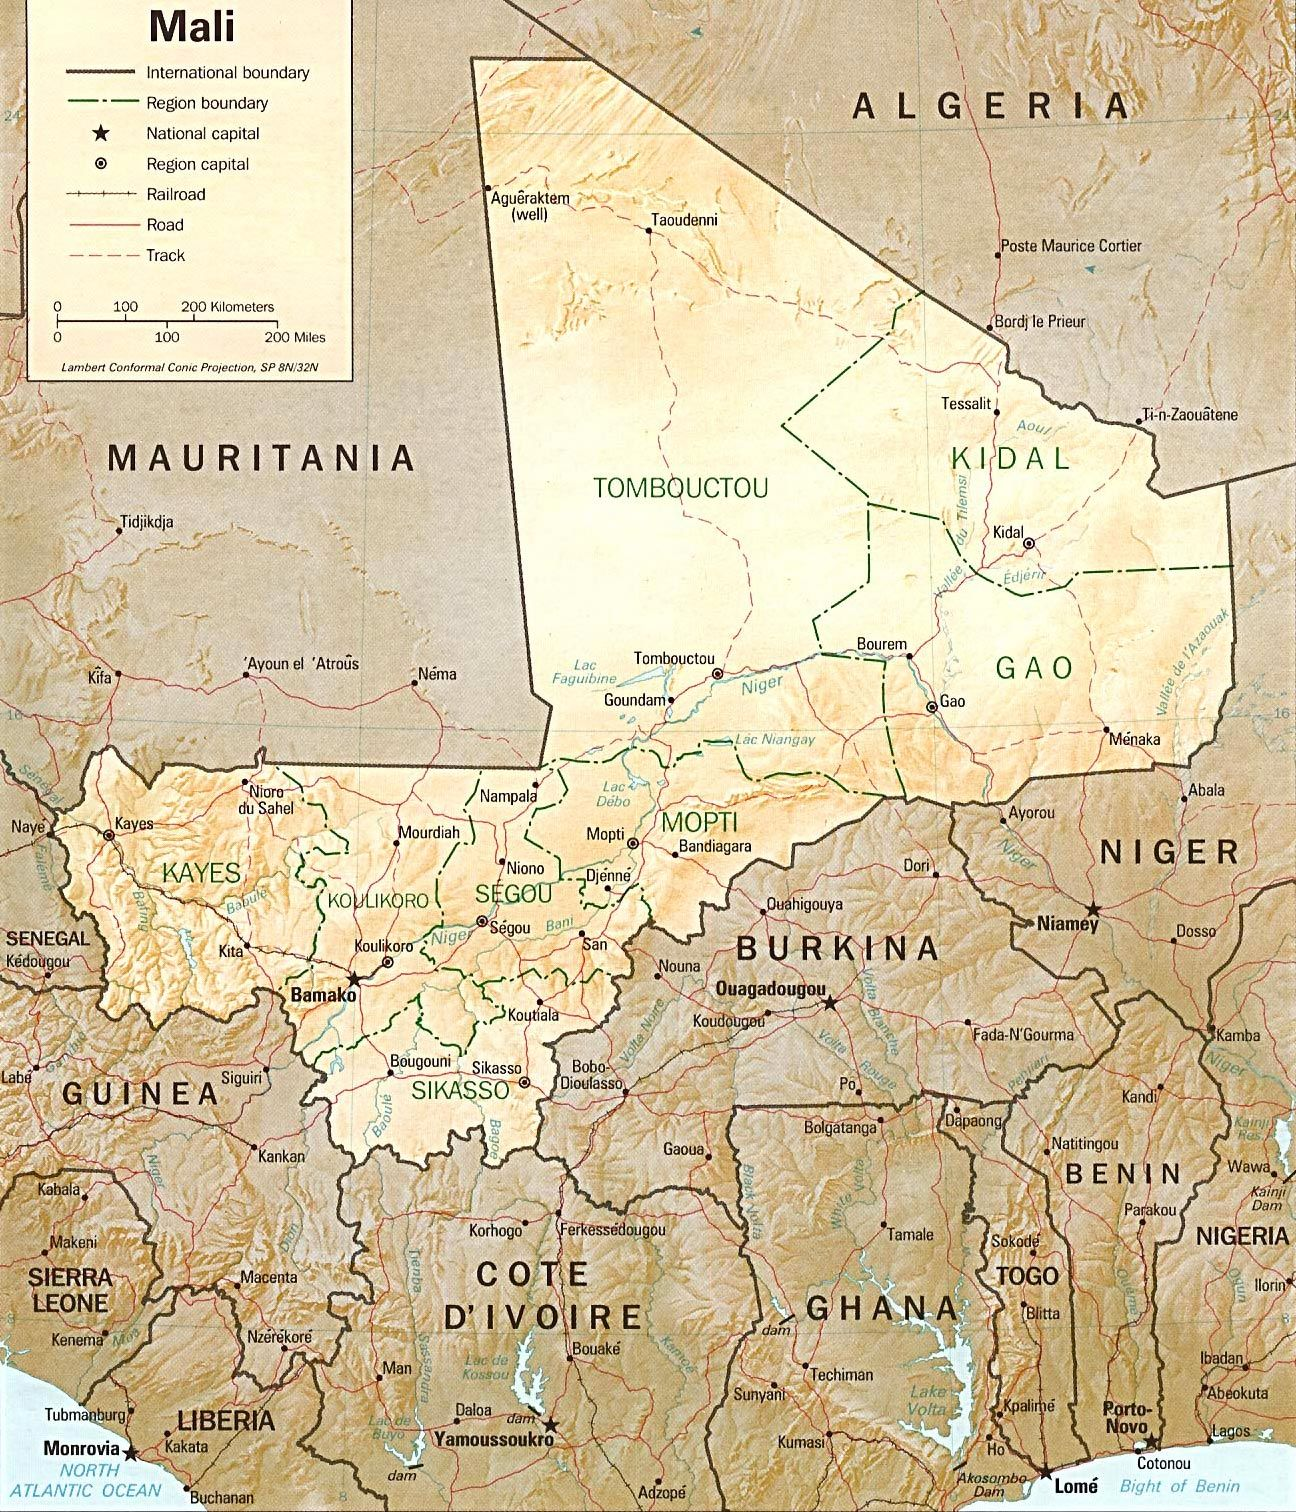 Mali Map Learn More About Africa At Wwwafricacom Traveling In - Mali map